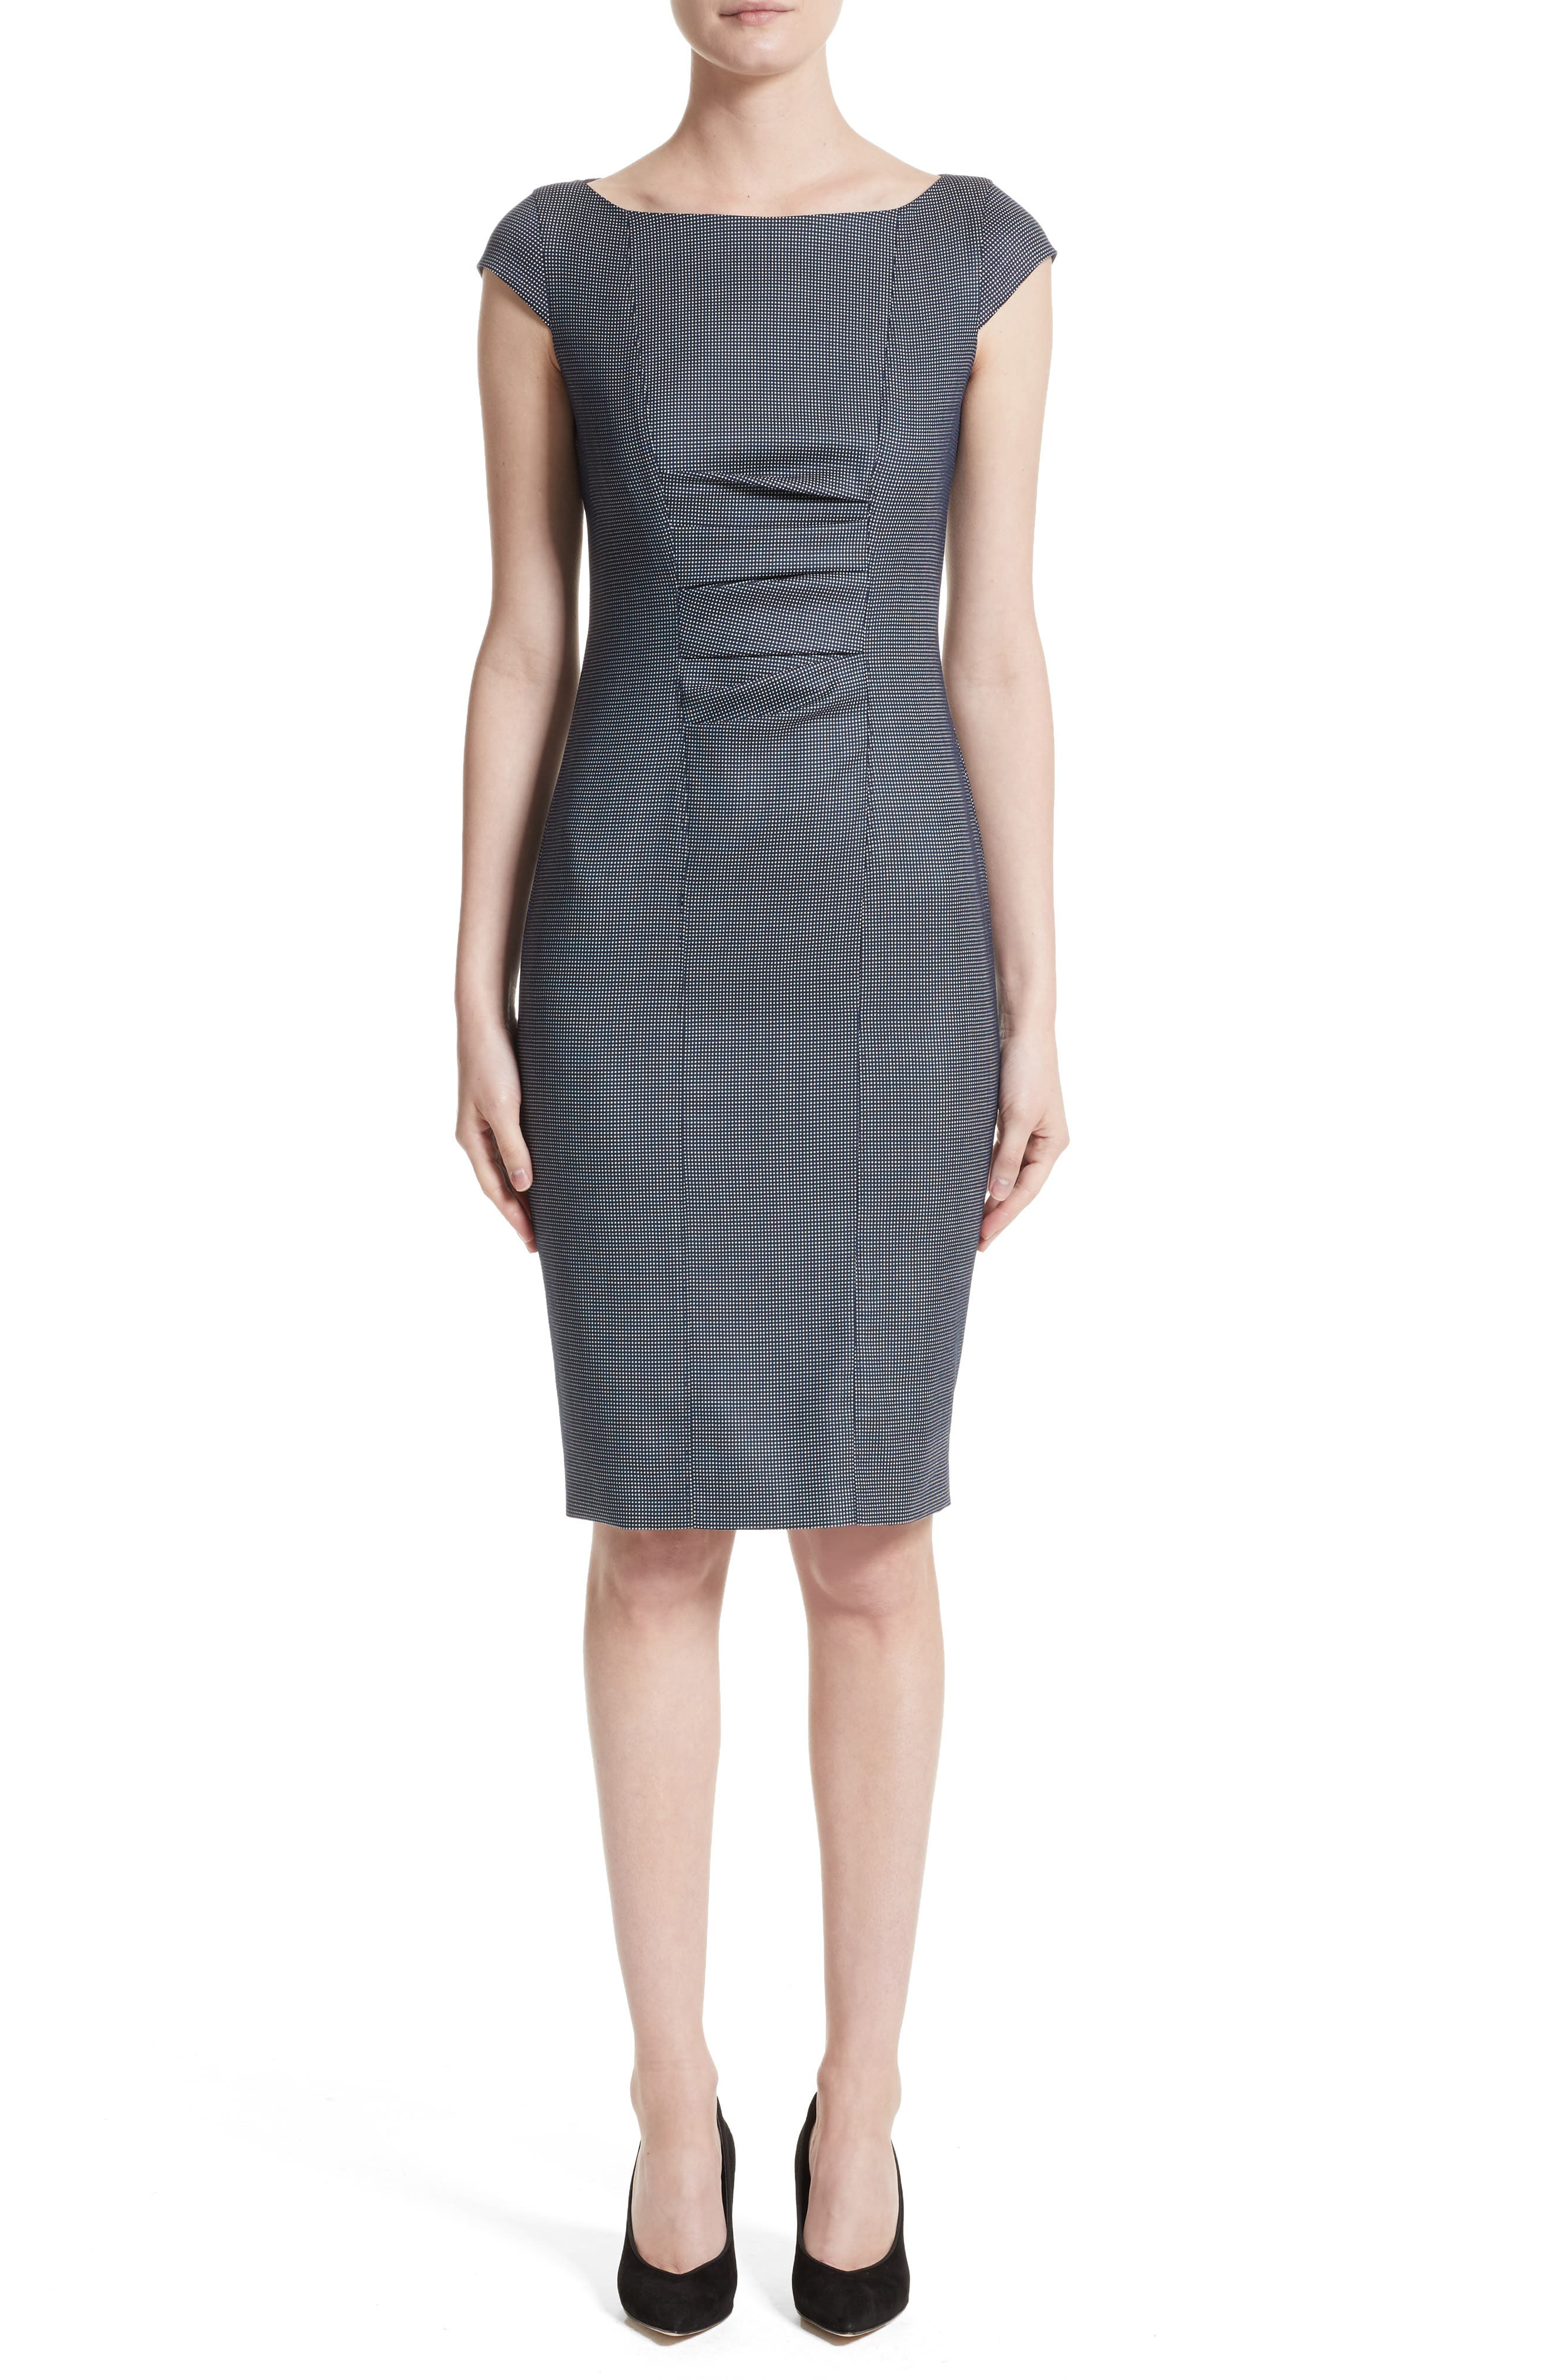 Max Mara Tasso Stretch Wool & Silk Sheath Dress (Nordstrom Exclusive)